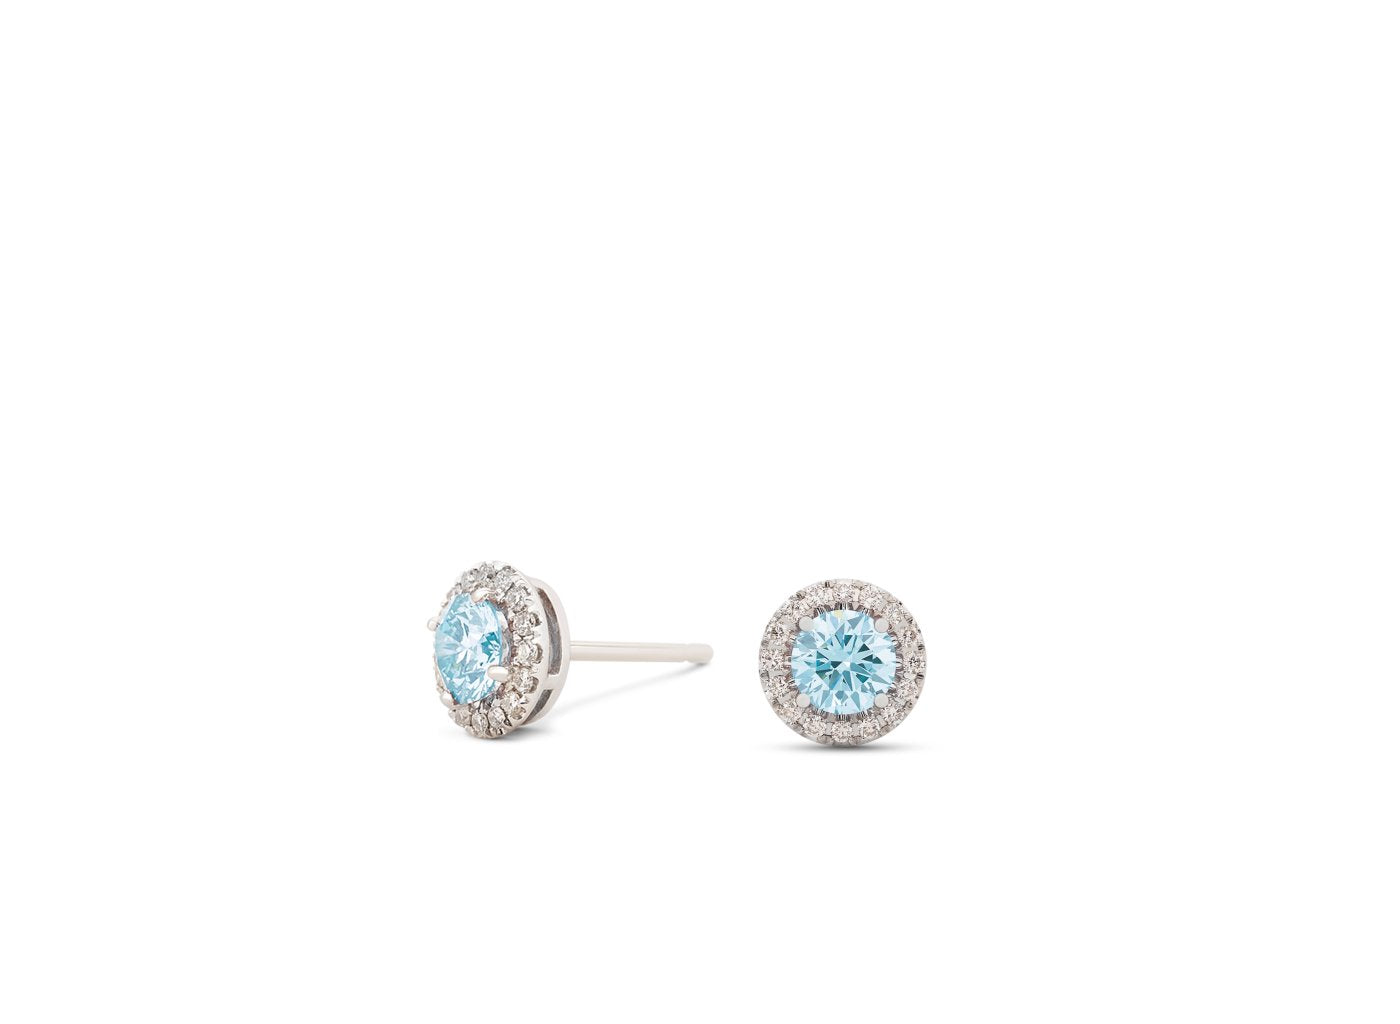 Side view of Halo 1/2 carat earrings with blue and white diamonds